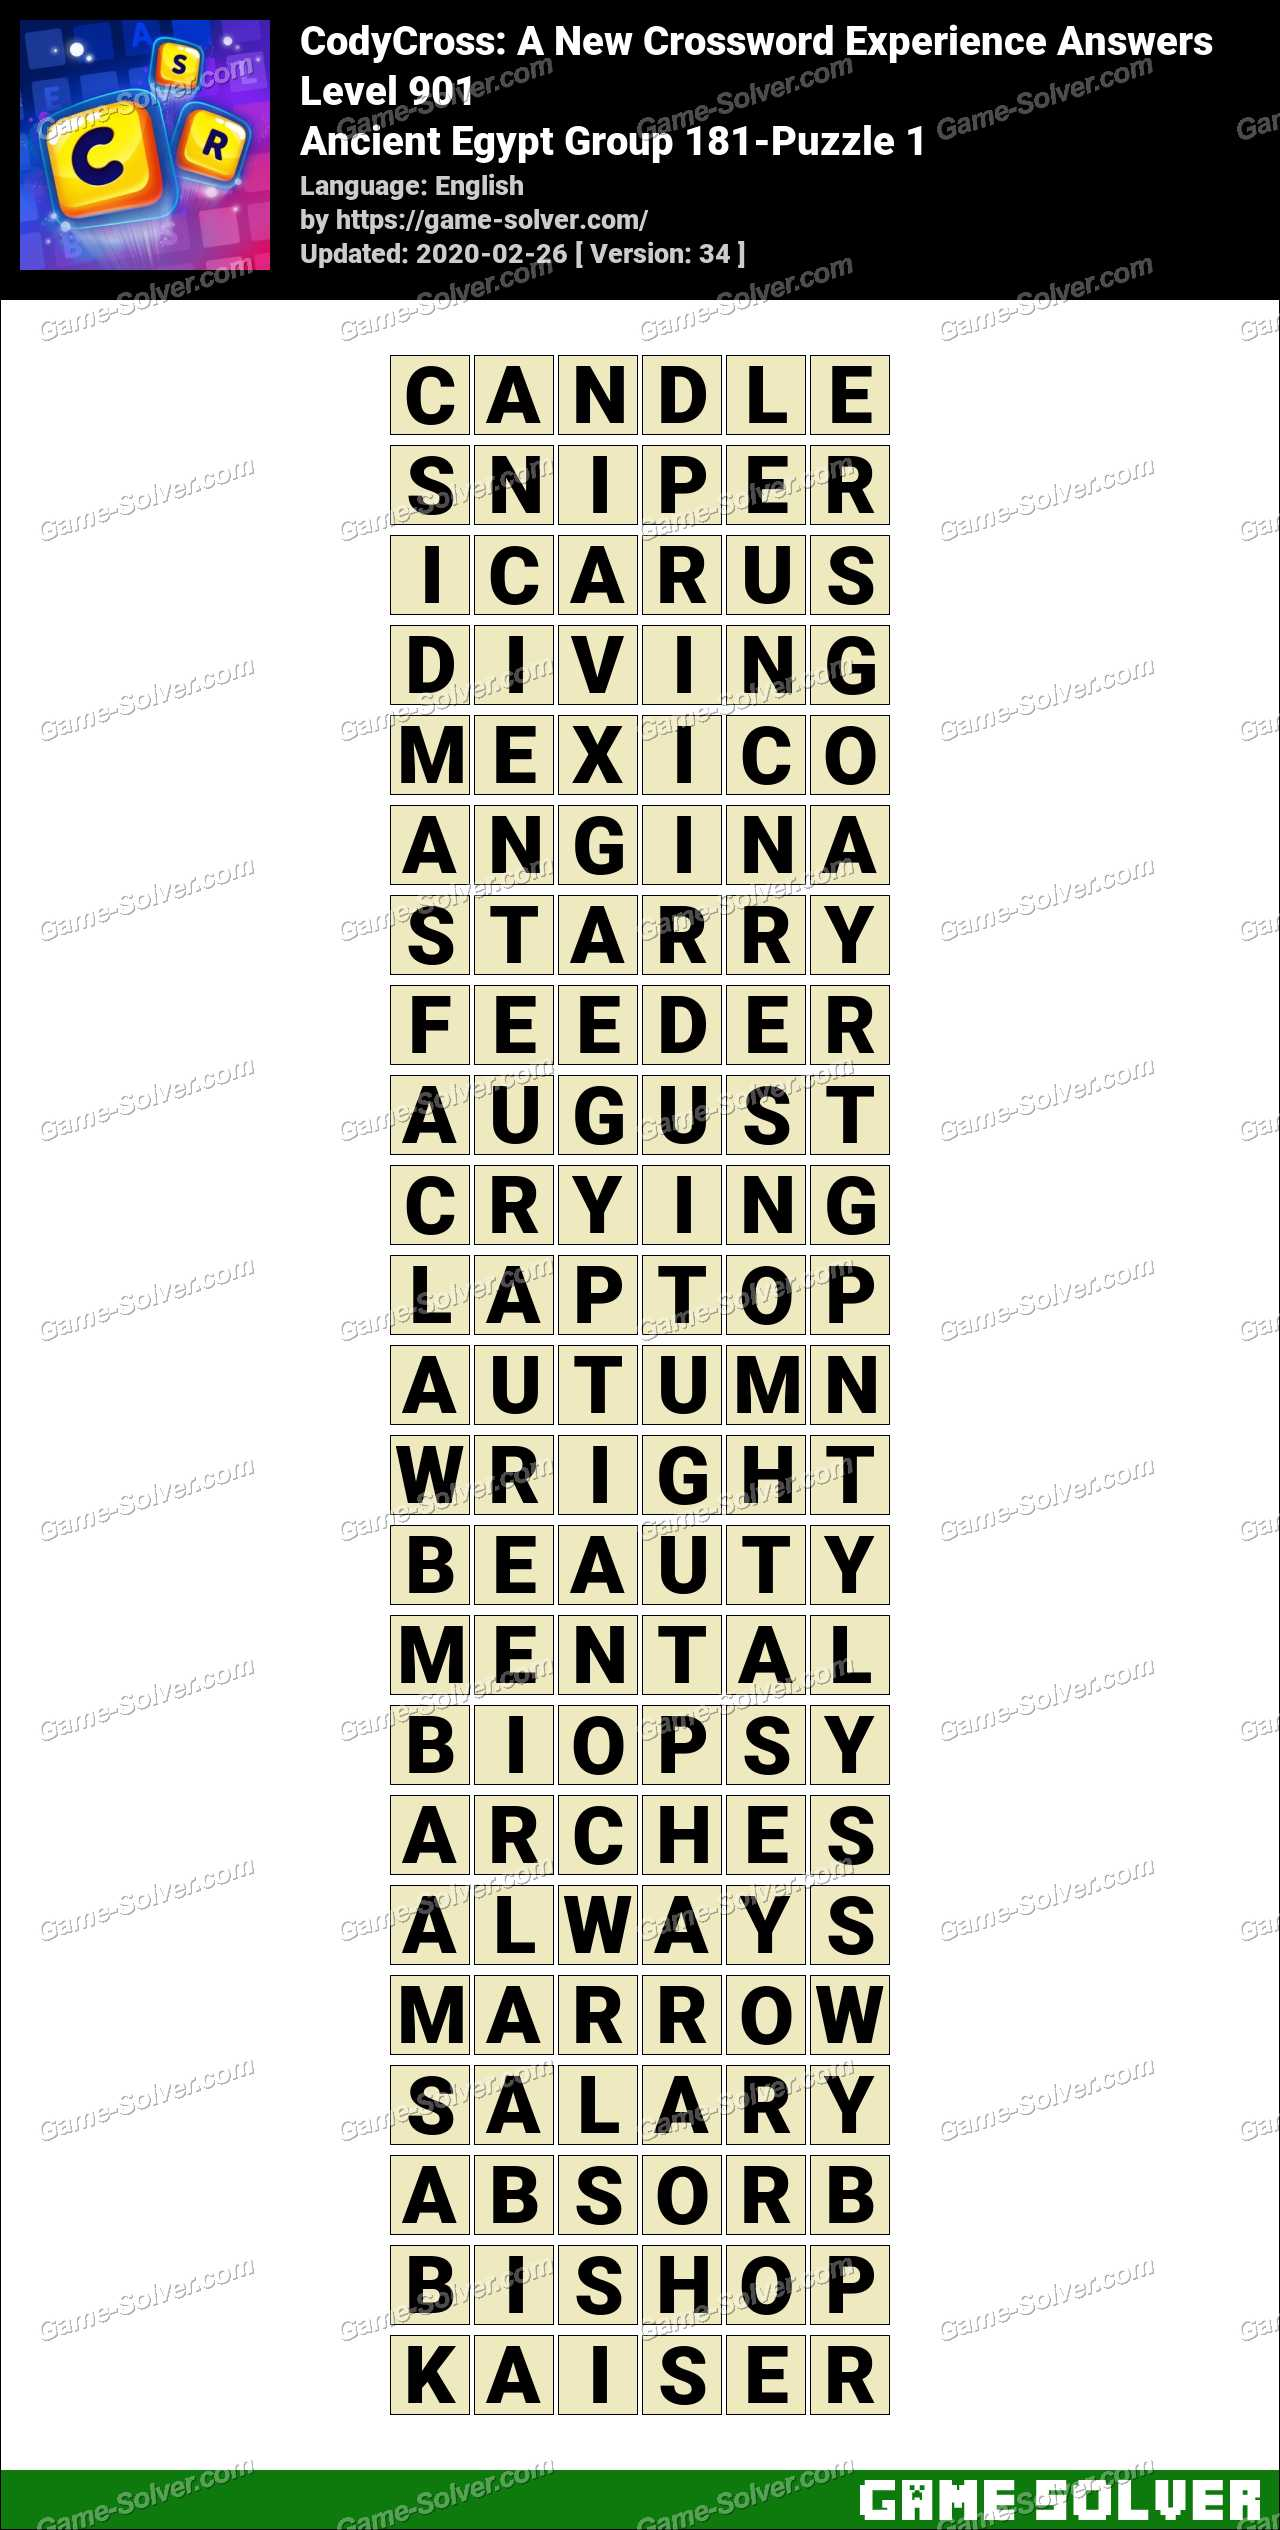 CodyCross Ancient Egypt Group 181-Puzzle 1 Answers